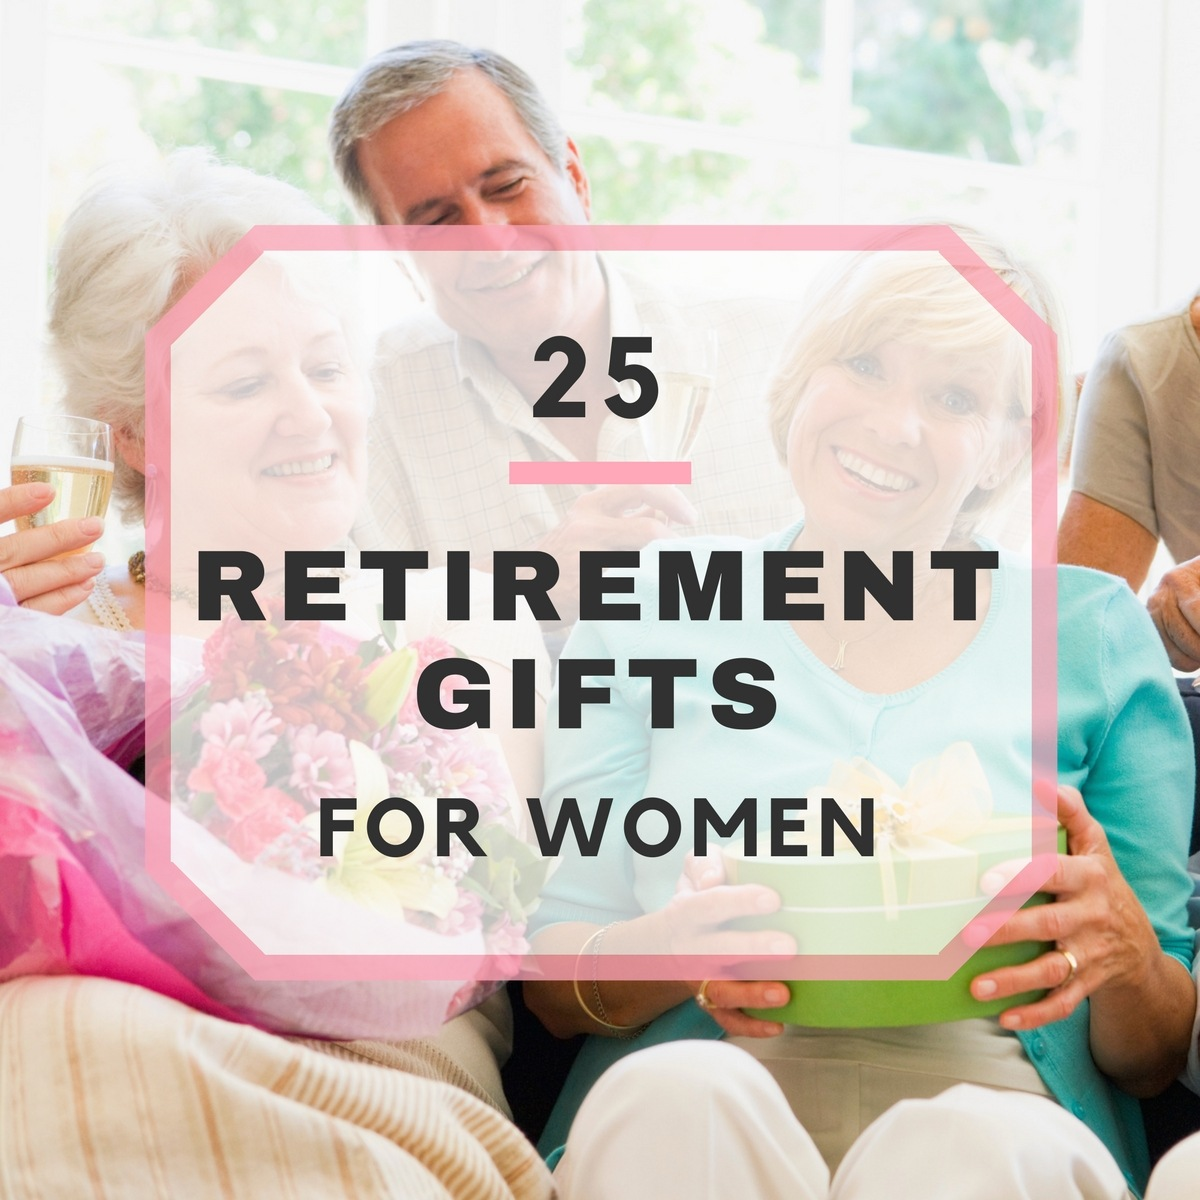 25 retirement gifts for women